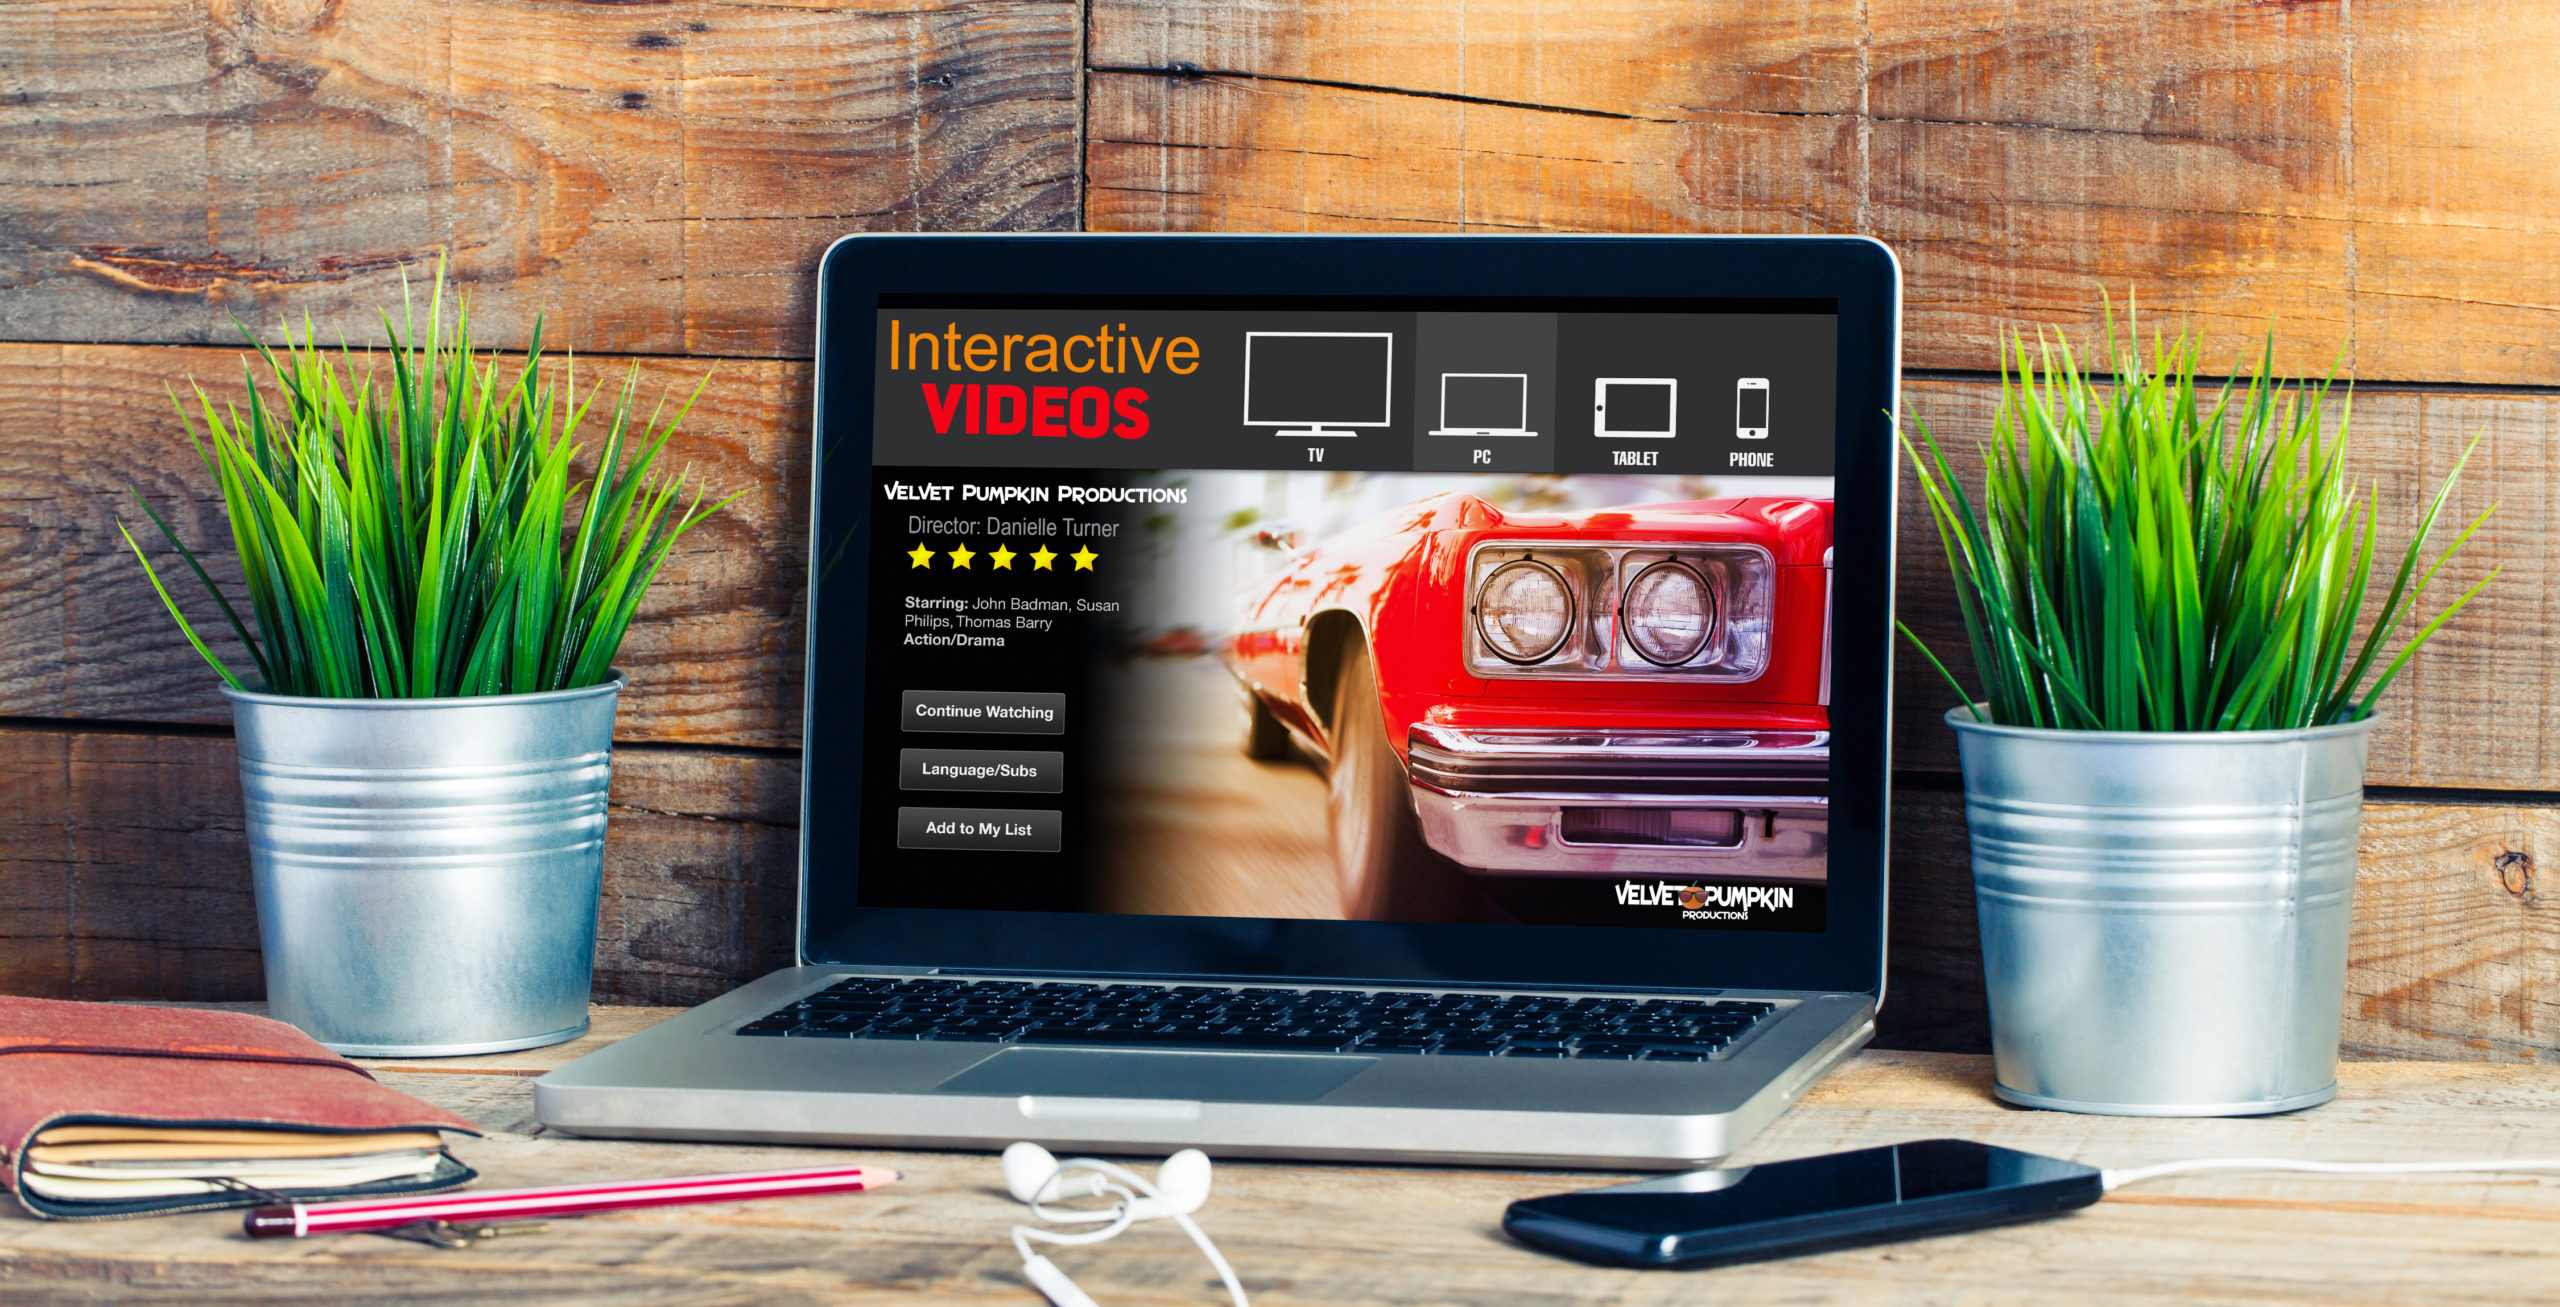 What is an interactive video?